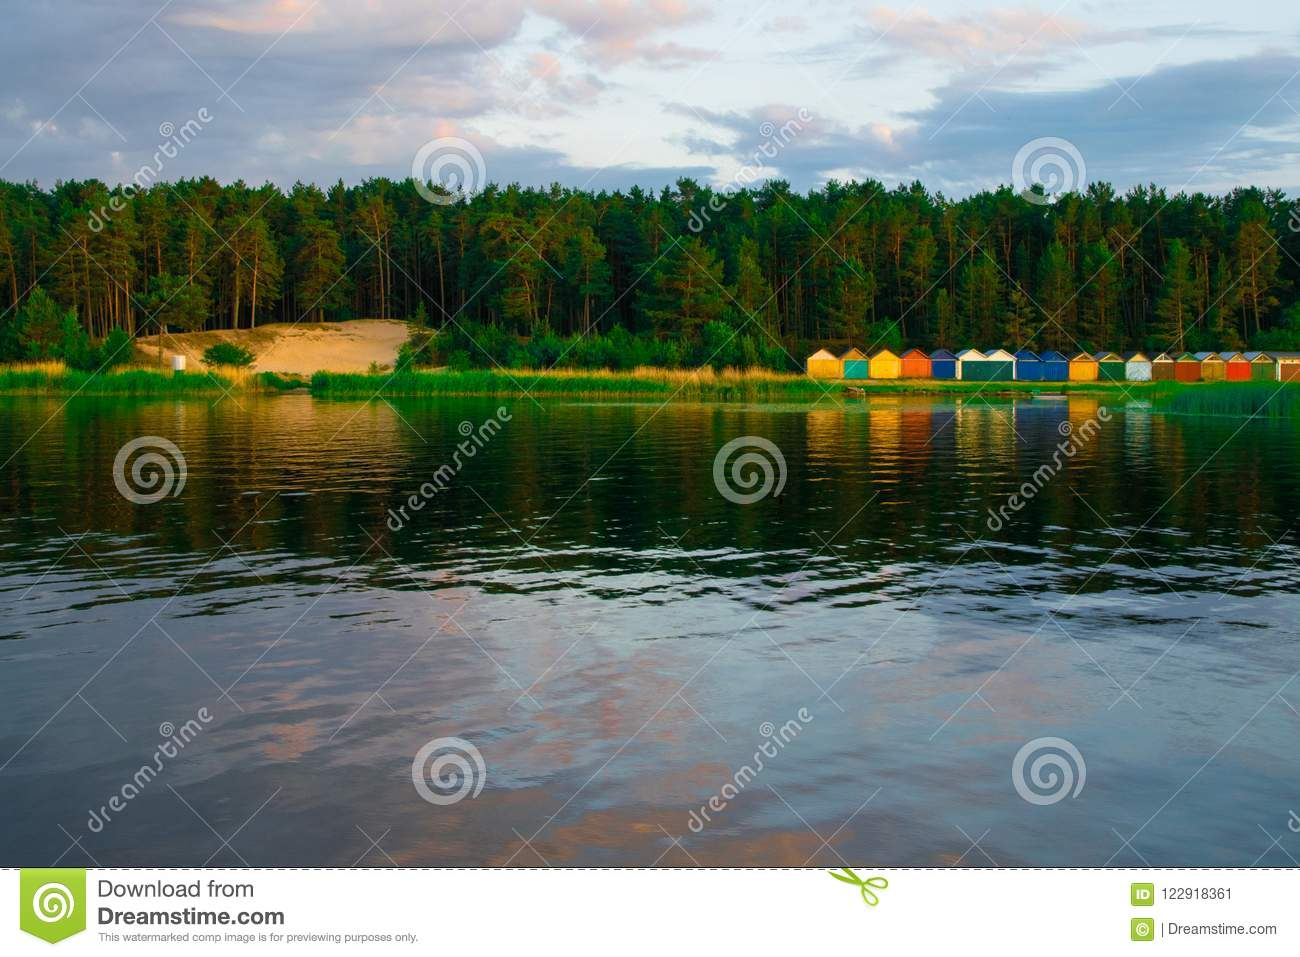 Colorful boat house on the edge of the water. Bright orange and green building is a waterside garage for boats.